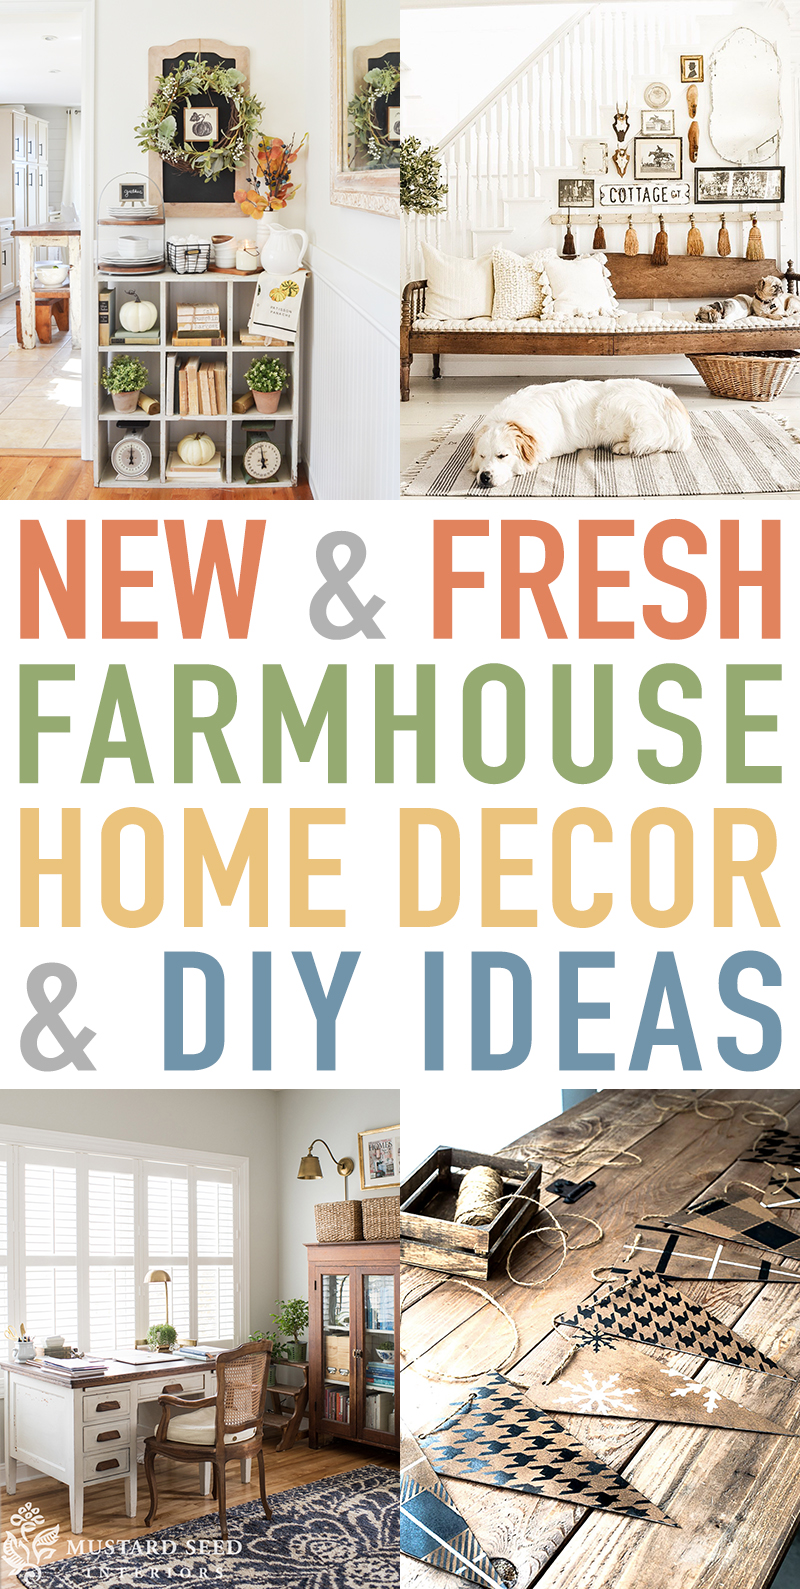 Time for some New and Fresh Farmhouse Home Decor & DIY Ideas!  Get the scoop on what is new in the wonderful world of Farmhouse this week!